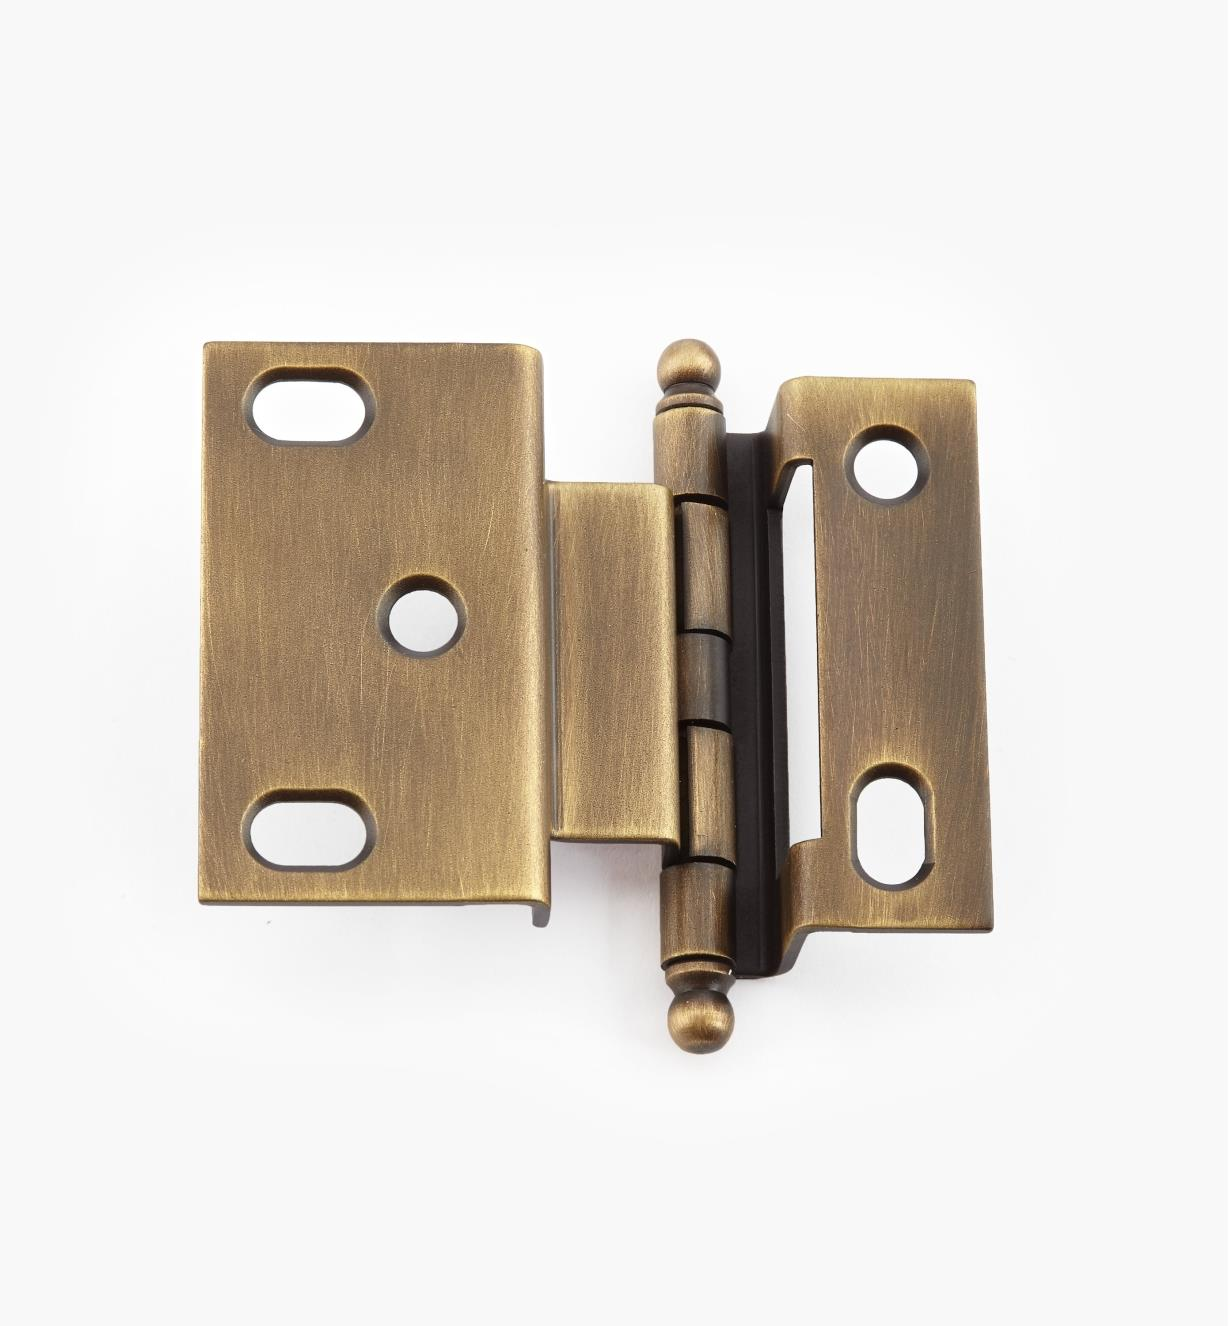 02H1224 - Weathered Brass Offset Hinge/Ball